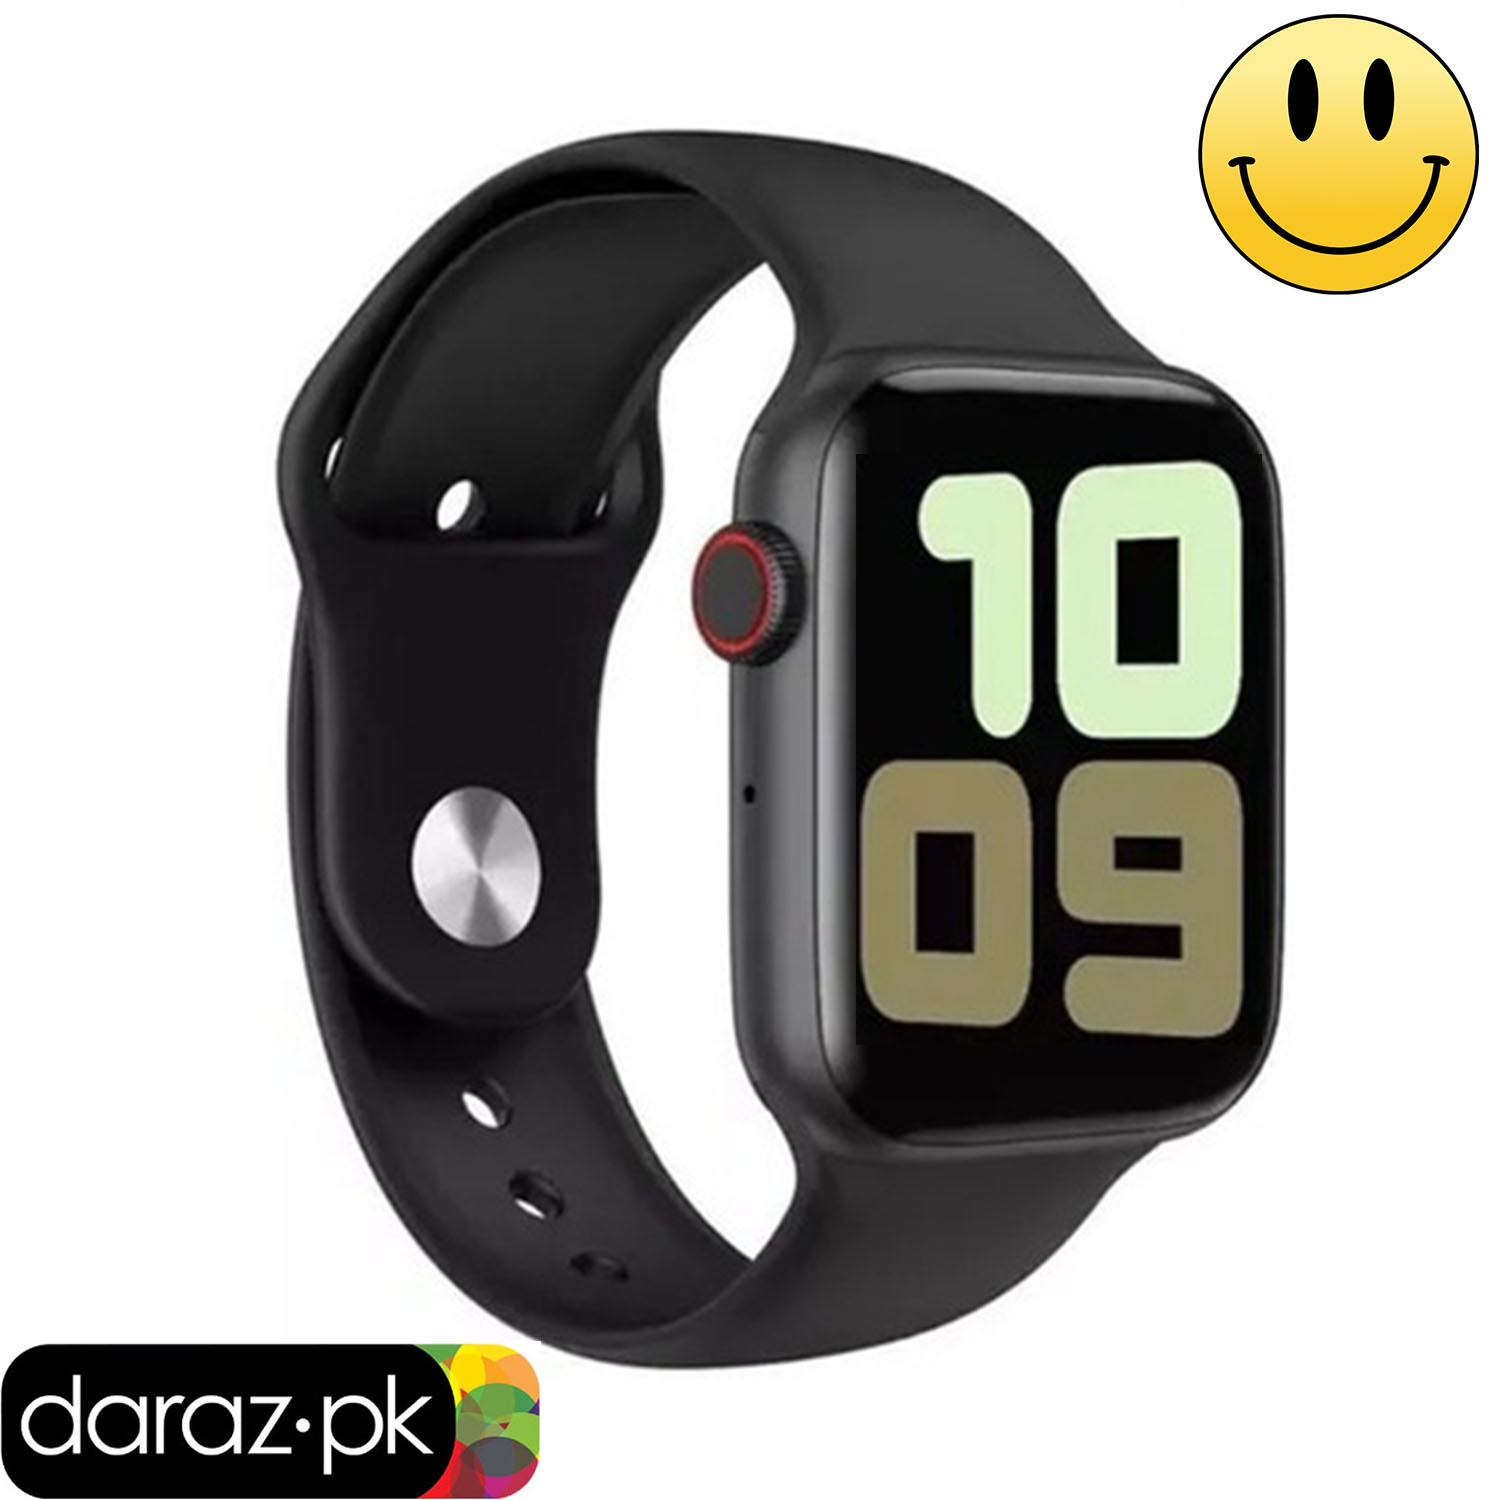 T500 Smartwatch Android & IOS Supported Bluetooth Watch